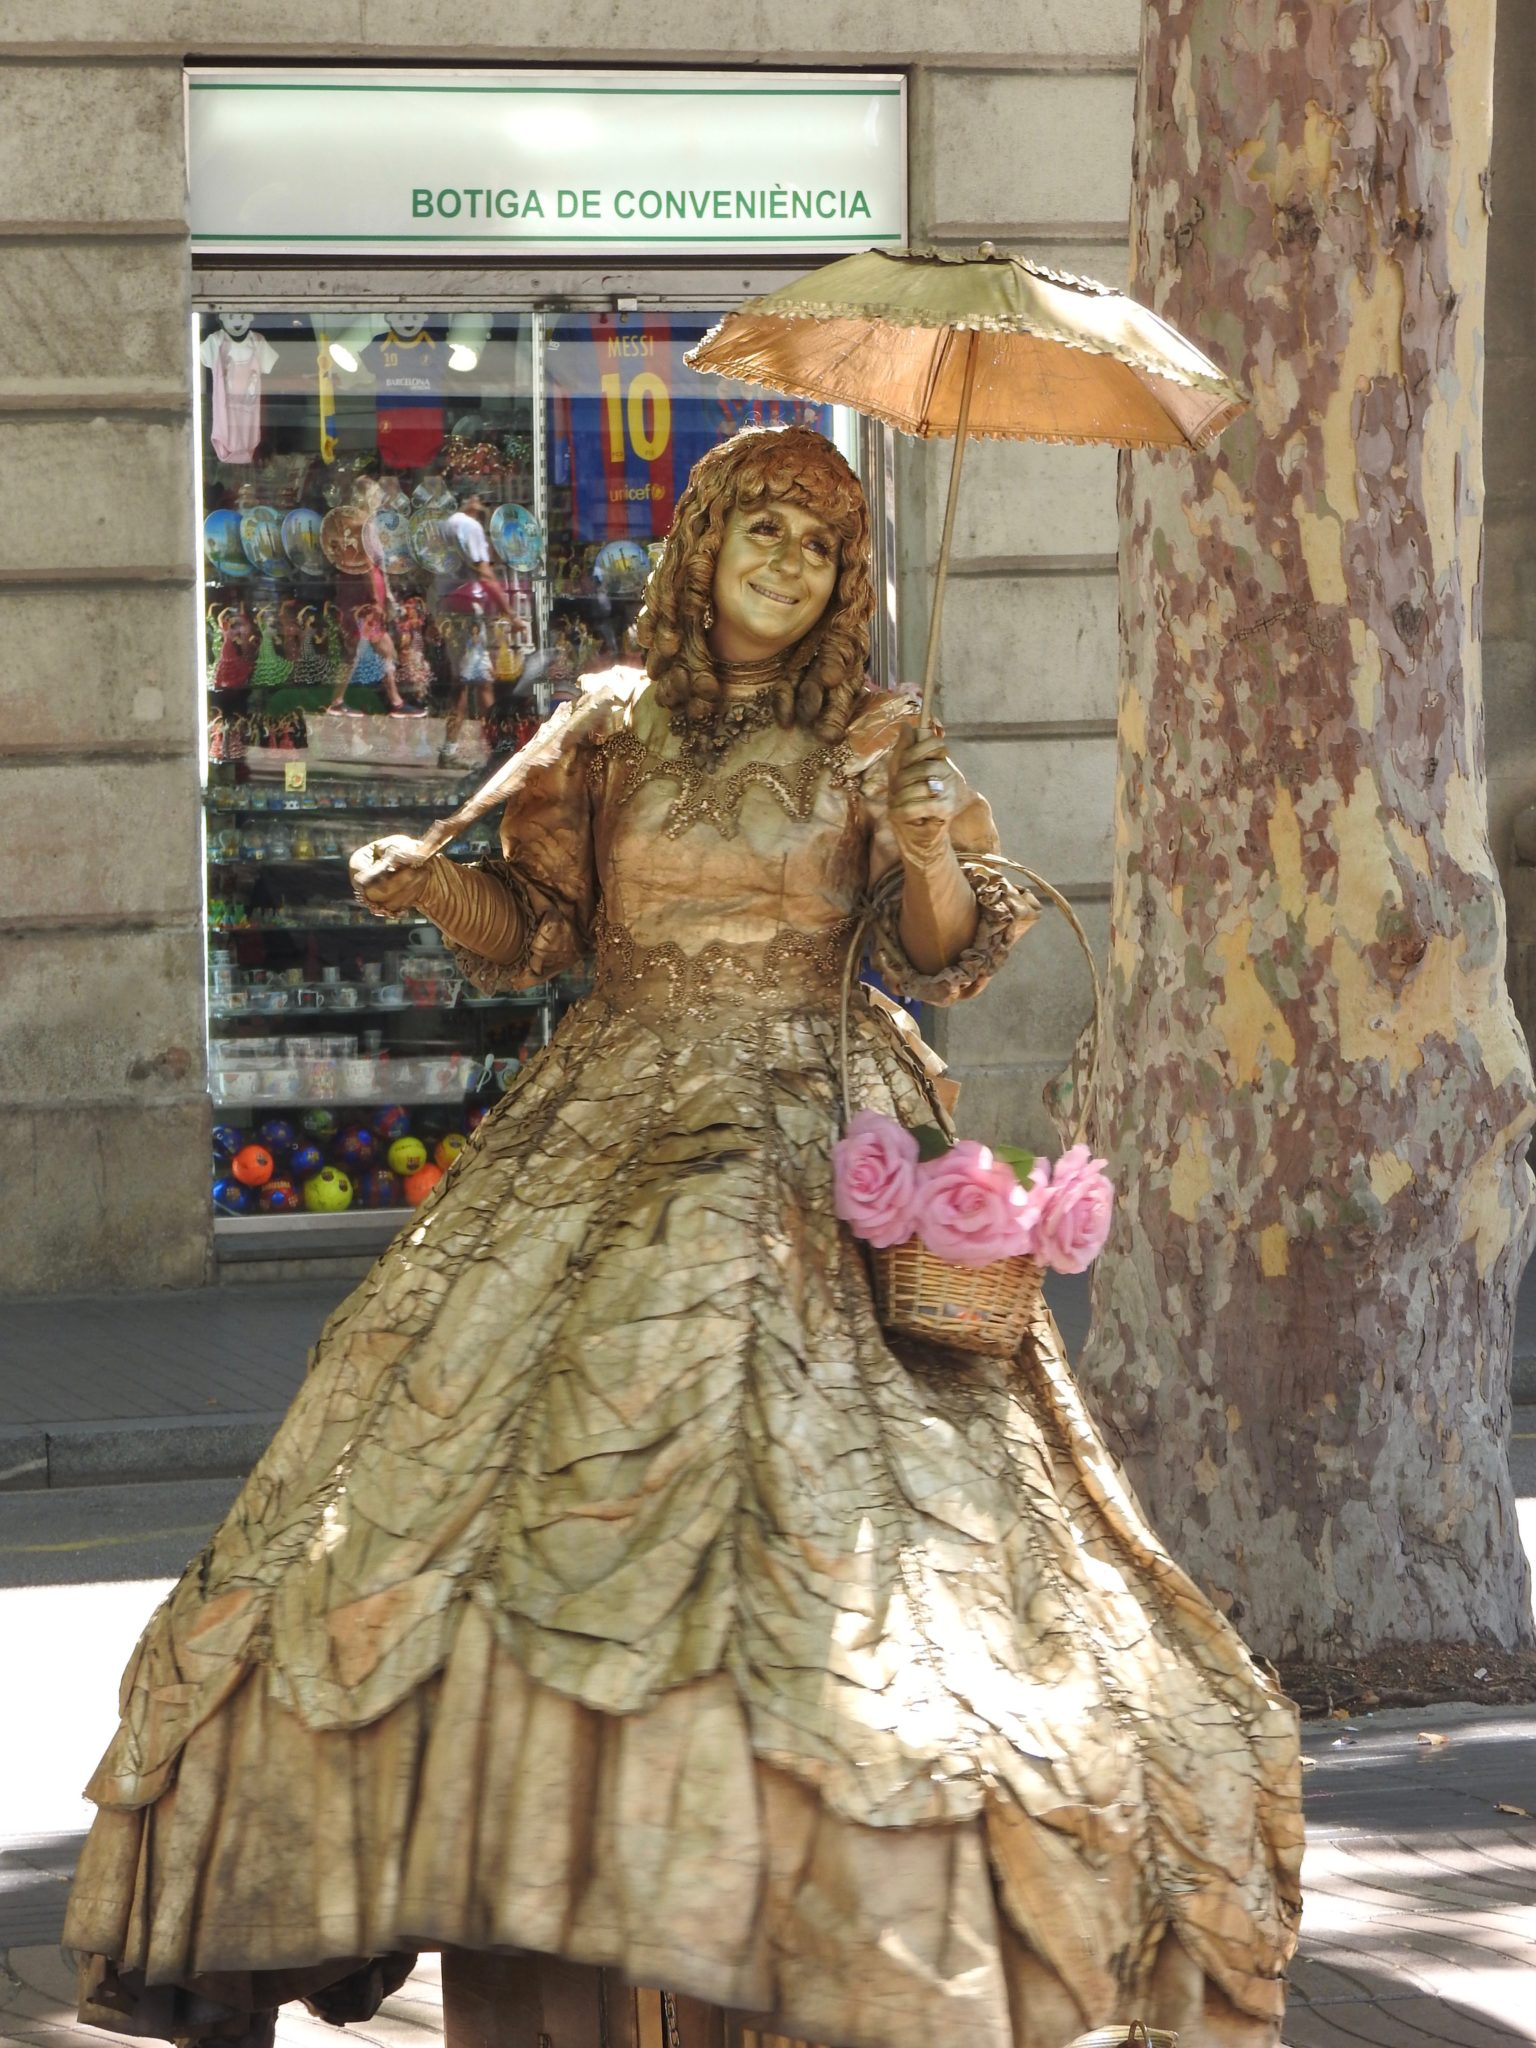 Street performer in gold make up and hoop skirt